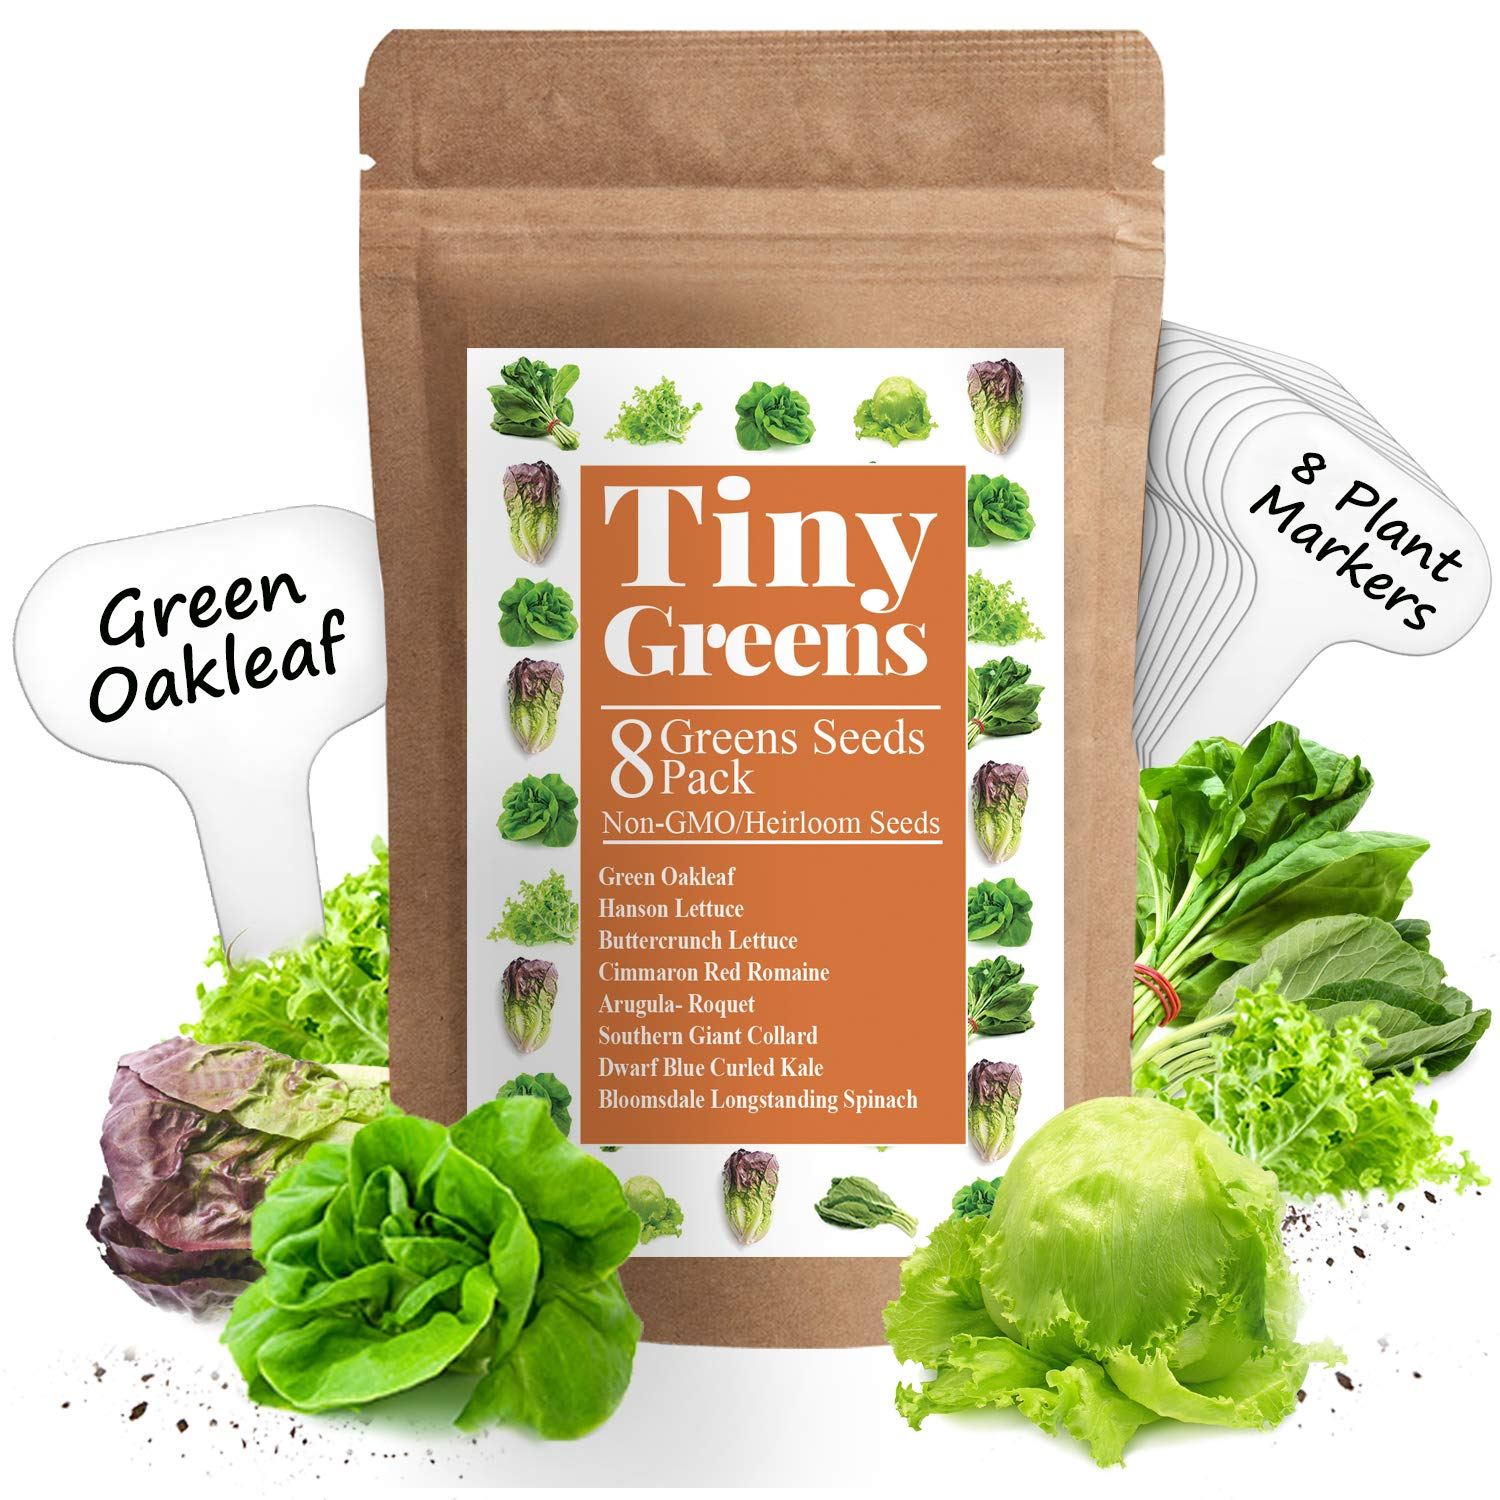 Heirloom Lettuce & Leafy Greens Seeds - Romaine, Kale, Spinach, Butterhead, Oak, Arugula, Collard Greens   1200 Seeds   Non Gmo Seeds For Planting   Hydroponic Home Vegetable Garden   Microgreen Seeds by Tiny Greens